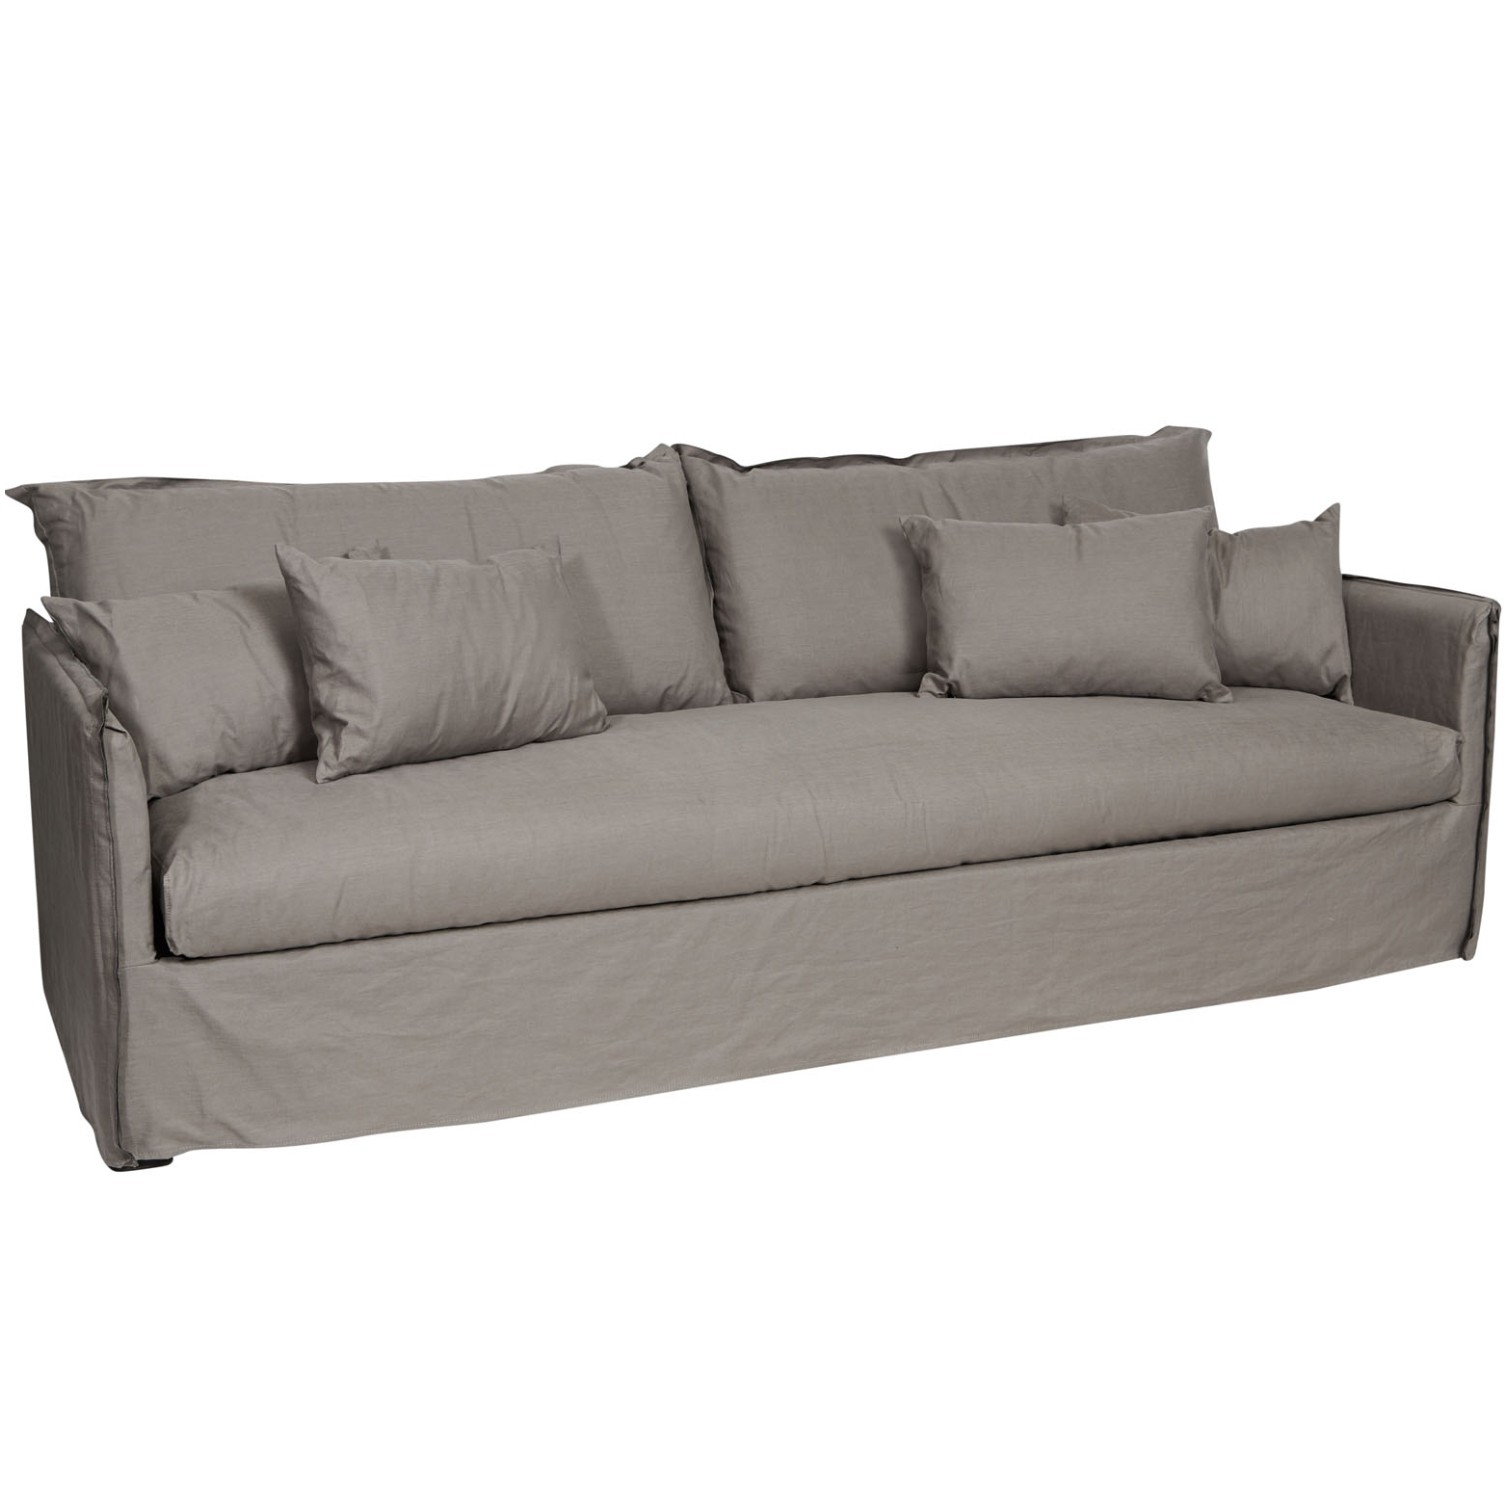 crew bungalow sofa - comes in 3 seater &3.5 seater